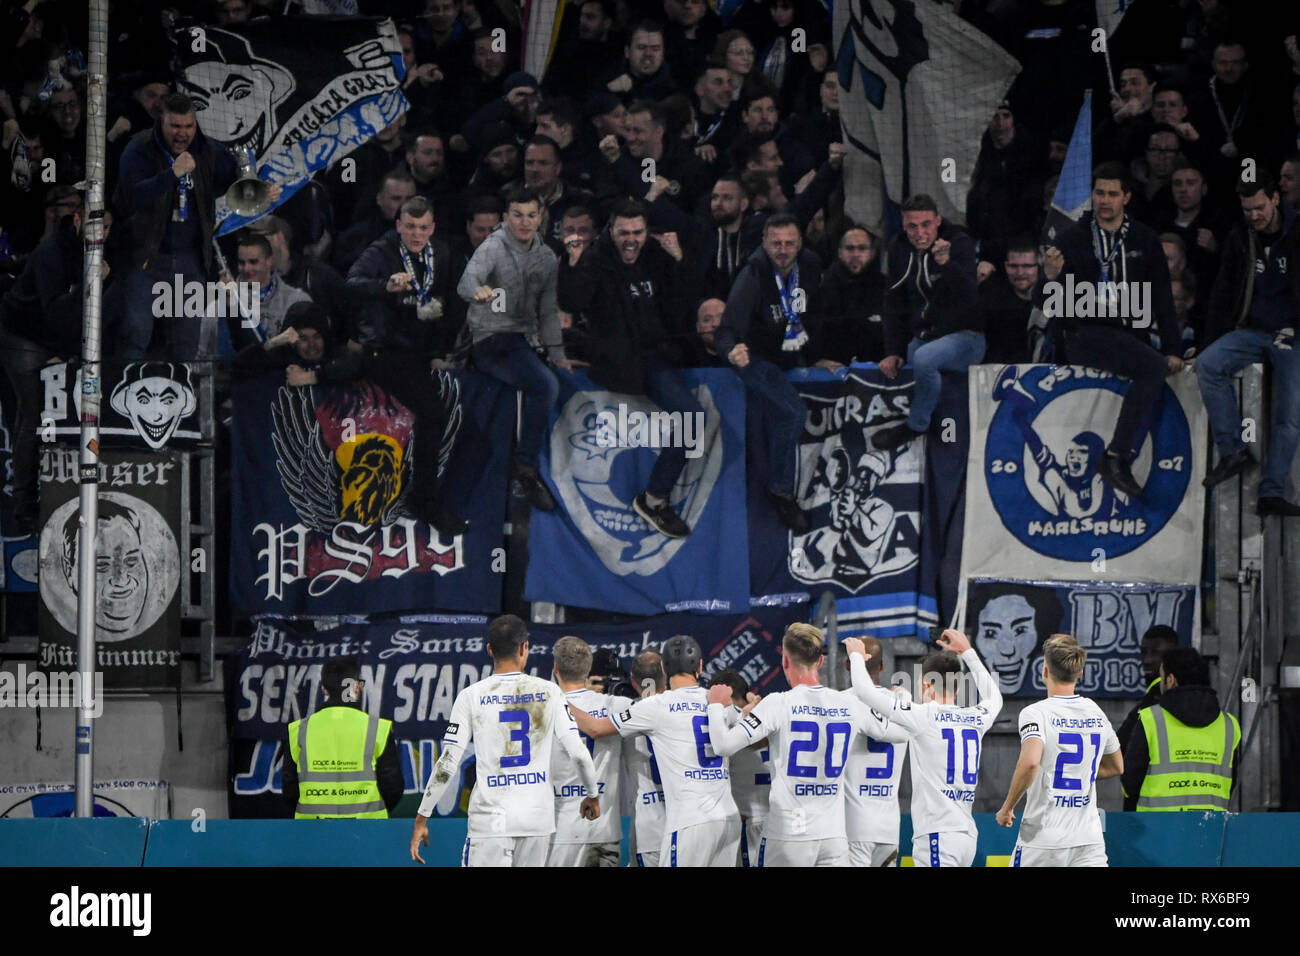 Duisburg, Deutschland. 08th Mar, 2019. jubilation of the Karlsruher players about the 0: 2 with the fans. GES/football/3rd league: Krefelder football club Uerdingen - Karlsruher SC, 08.03.2019 Football/Soccer: 3rd League: KFC Uerdingen vs Karlsruher SC, Duisburg, March 8, 2019 | usage worldwide Credit: dpa/Alamy Live News - Stock Image